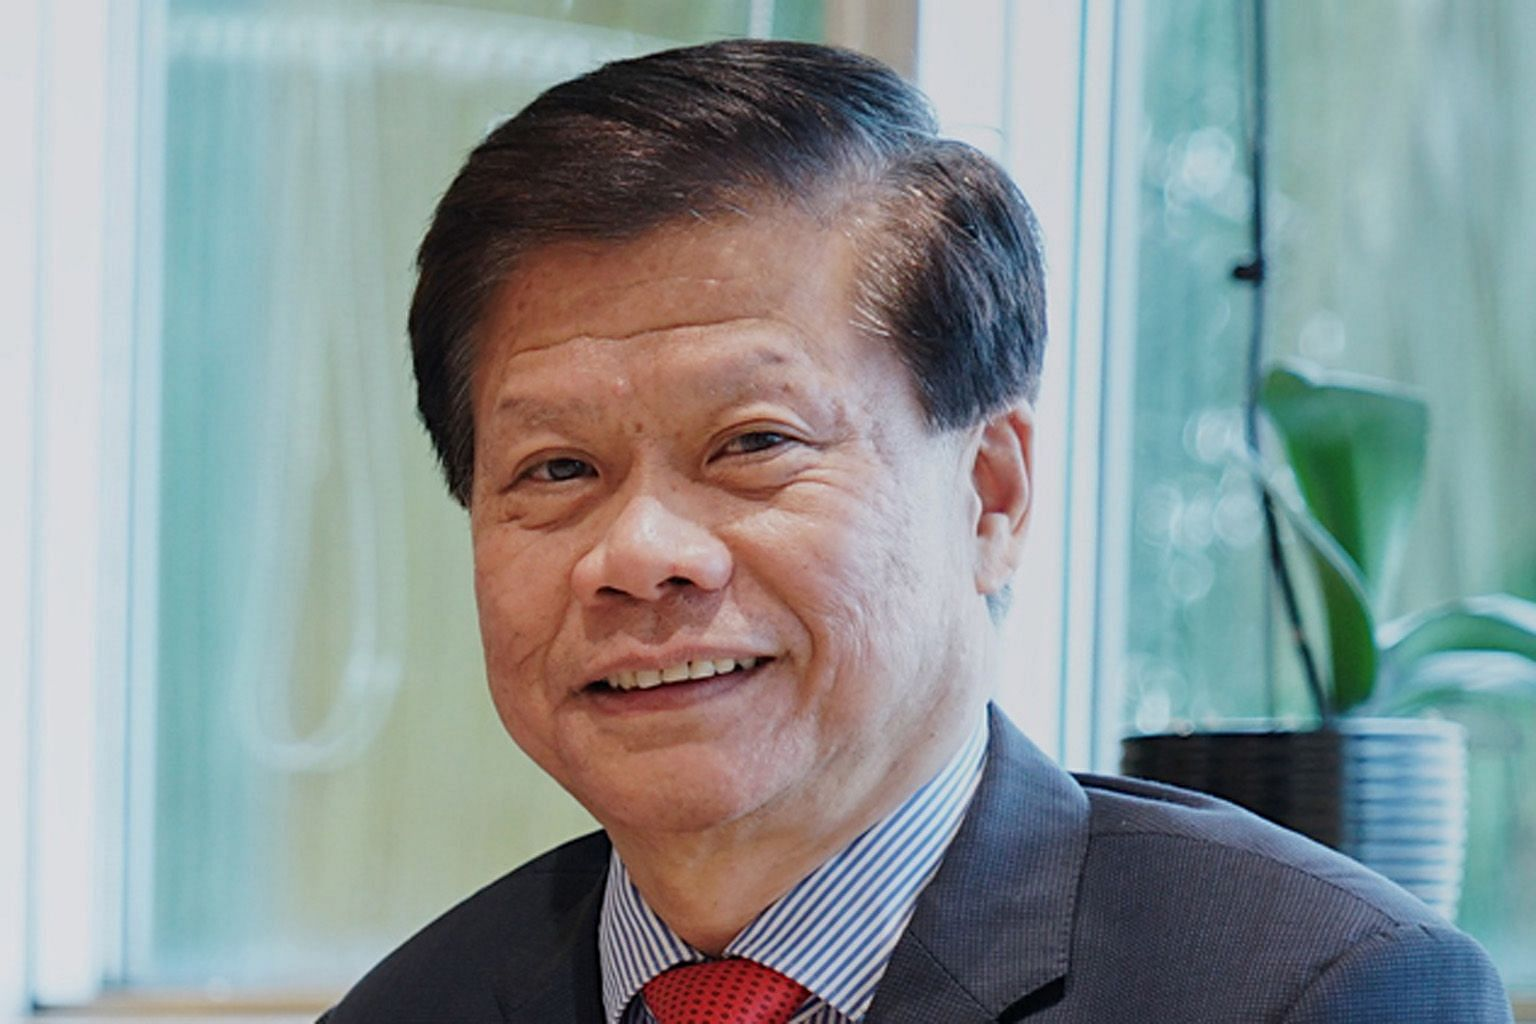 Professor Lam Khin Yong was involved in NTU's tie-ups with French firms and institutions.